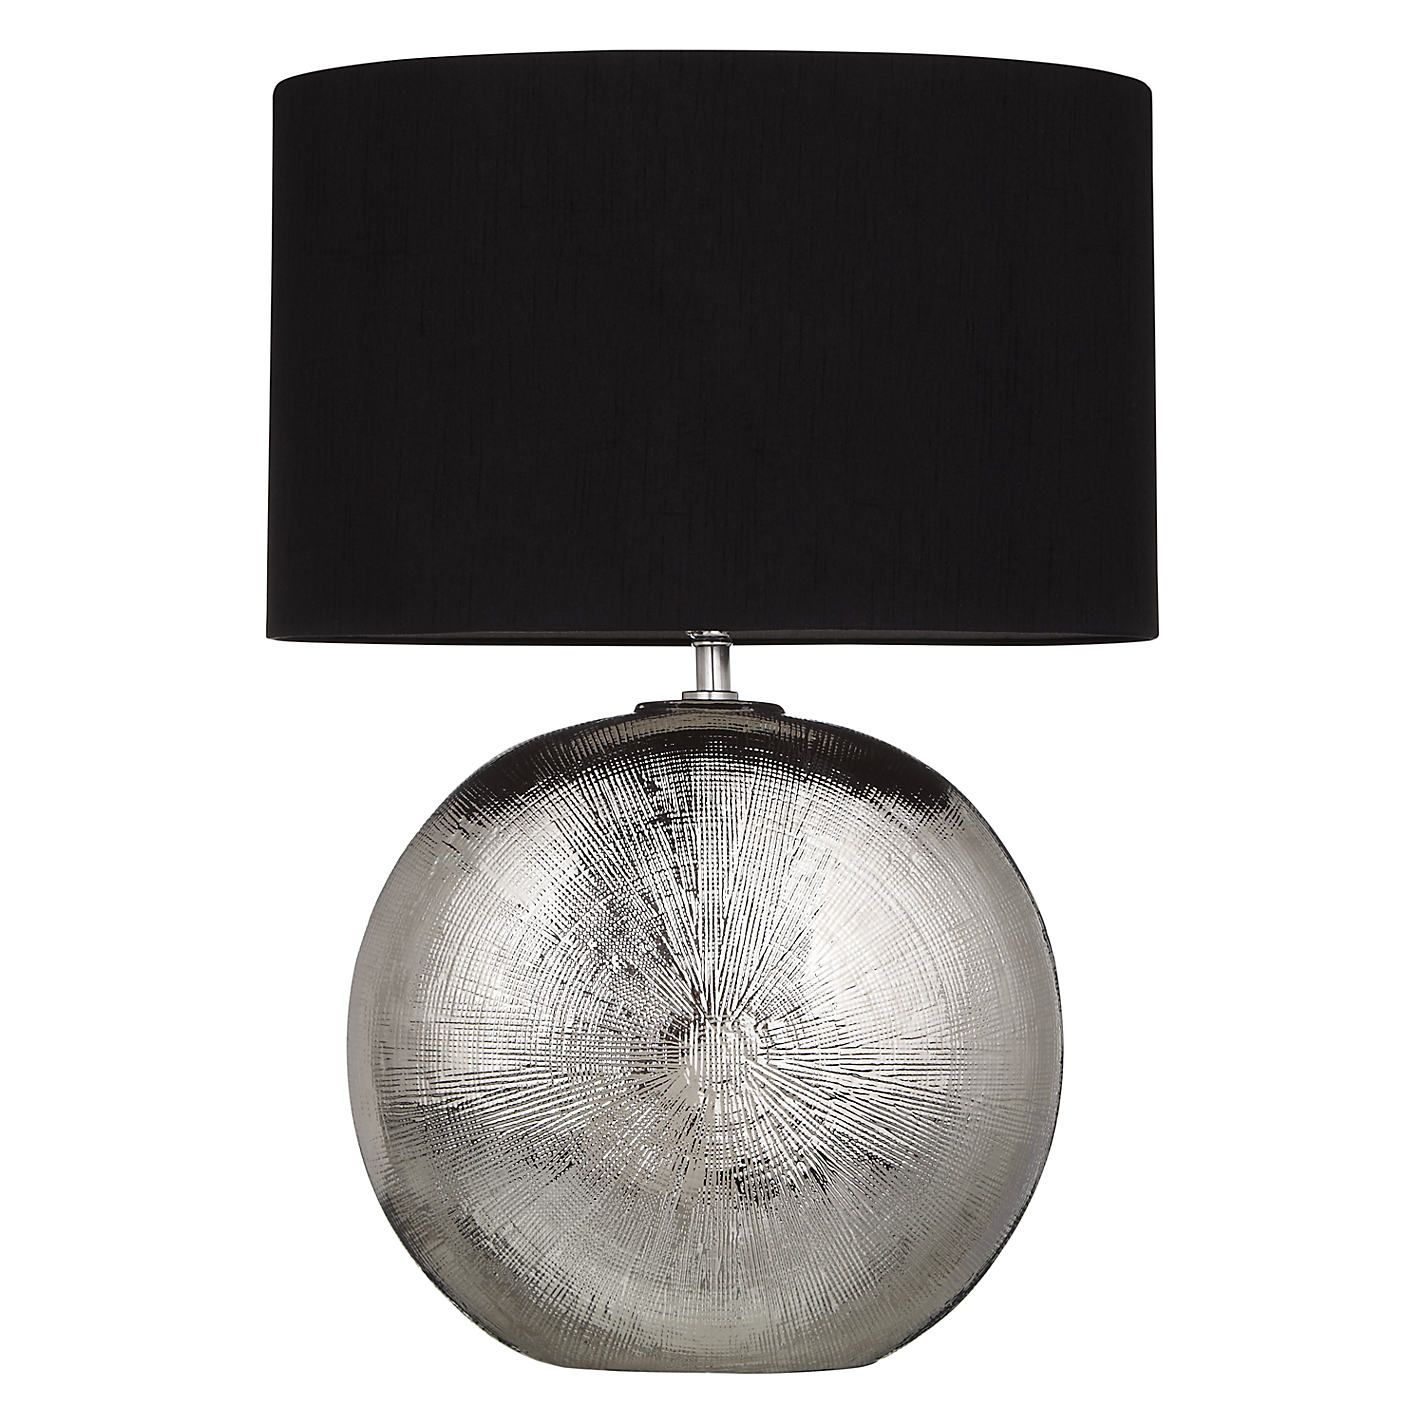 Benjamin chromed ceramic table lamp ceramics ceramic table and benjamin chromed ceramic table lamp ceramic table lampsjohn lewisdining geotapseo Image collections